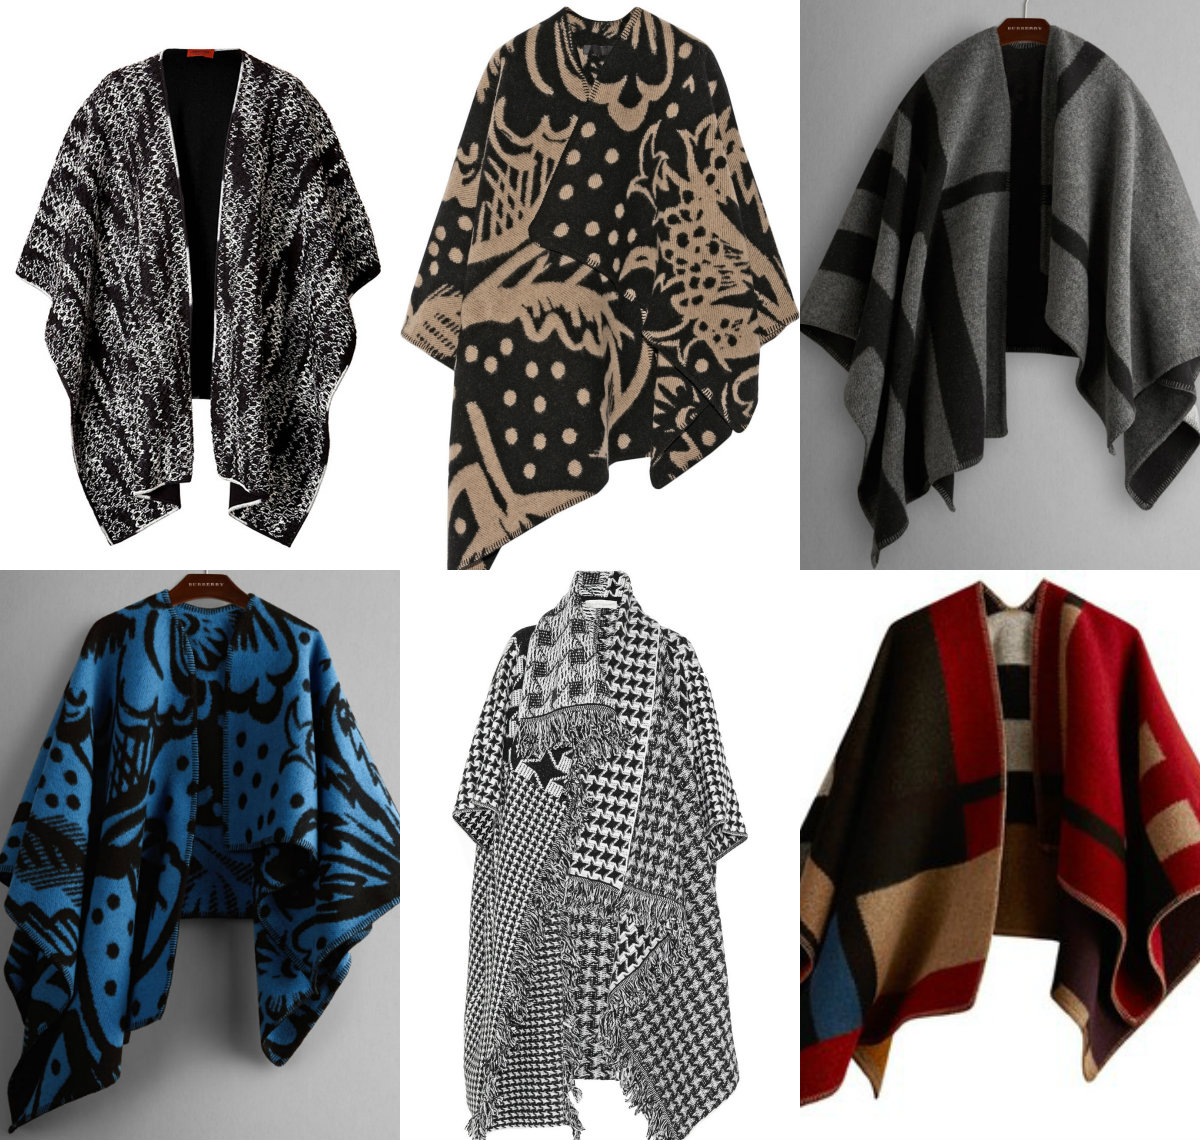 blanket coat collage